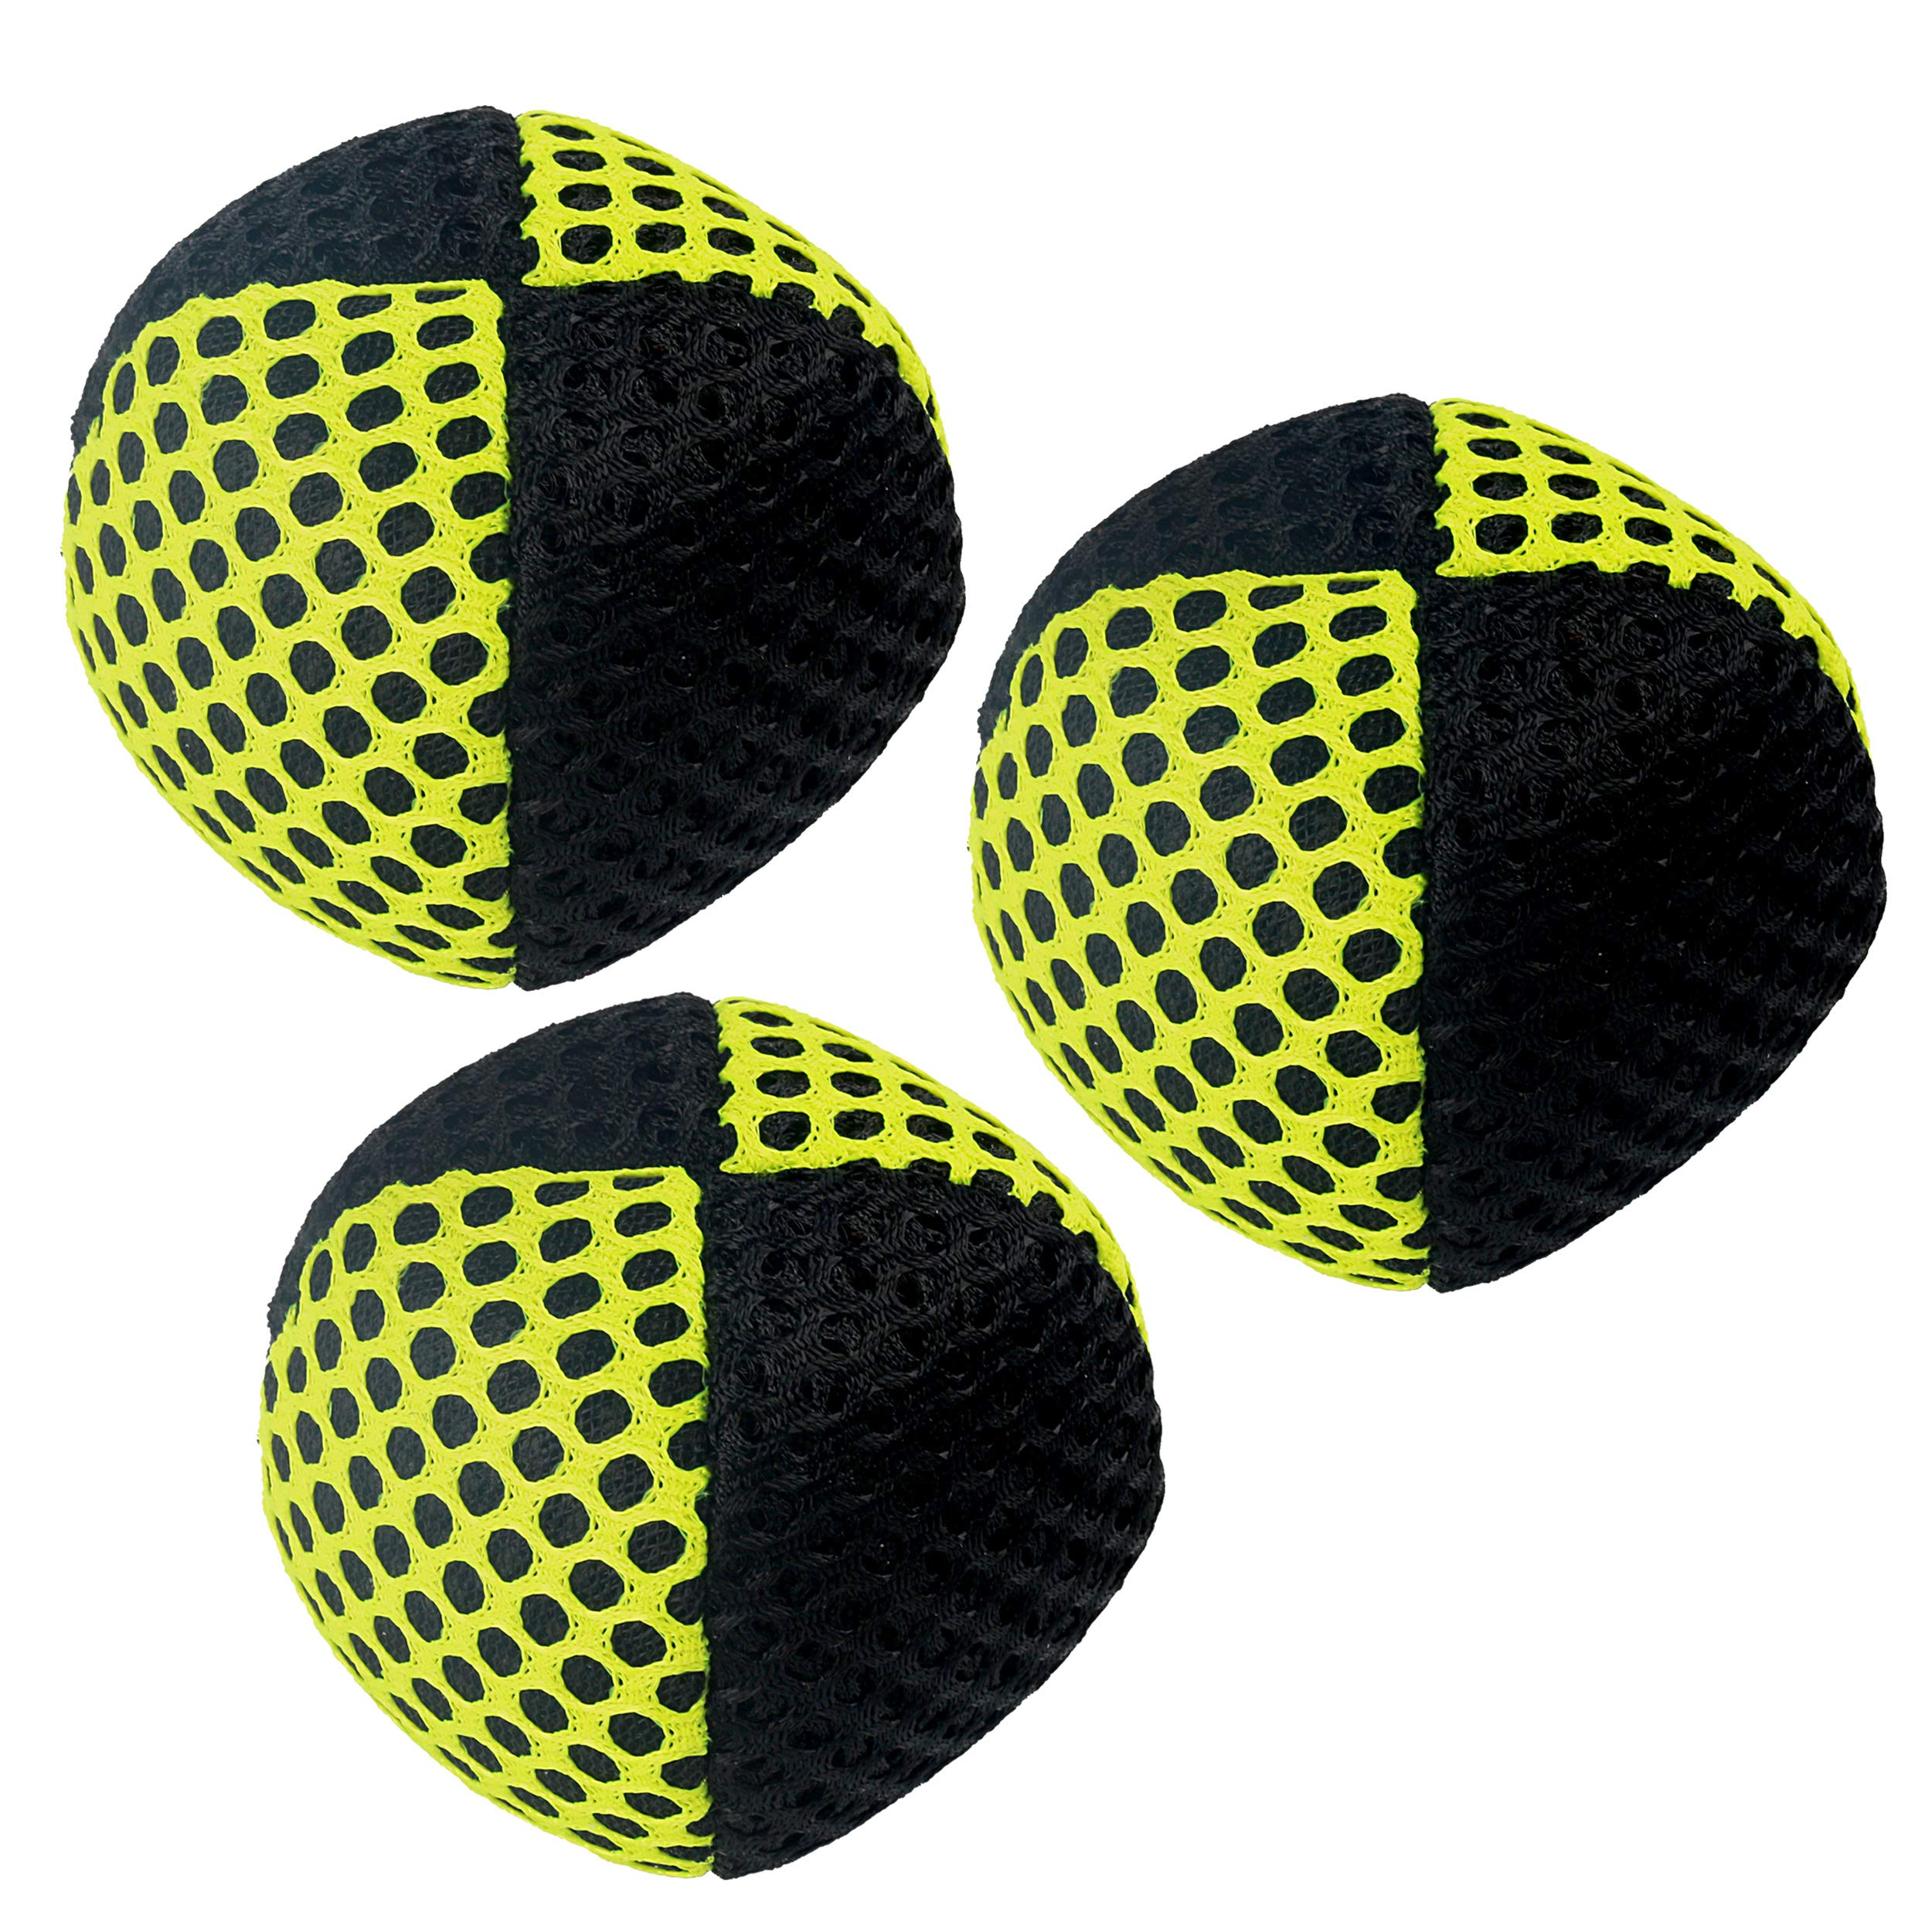 Speevers Xballs Juggling Balls Professional Set of 3 Fresh Design - 10 Beautiful Colors Available - 2 Layers of Net Carry Case - Choice of The World Champions (Black - Yellow, 90g) by Speevers